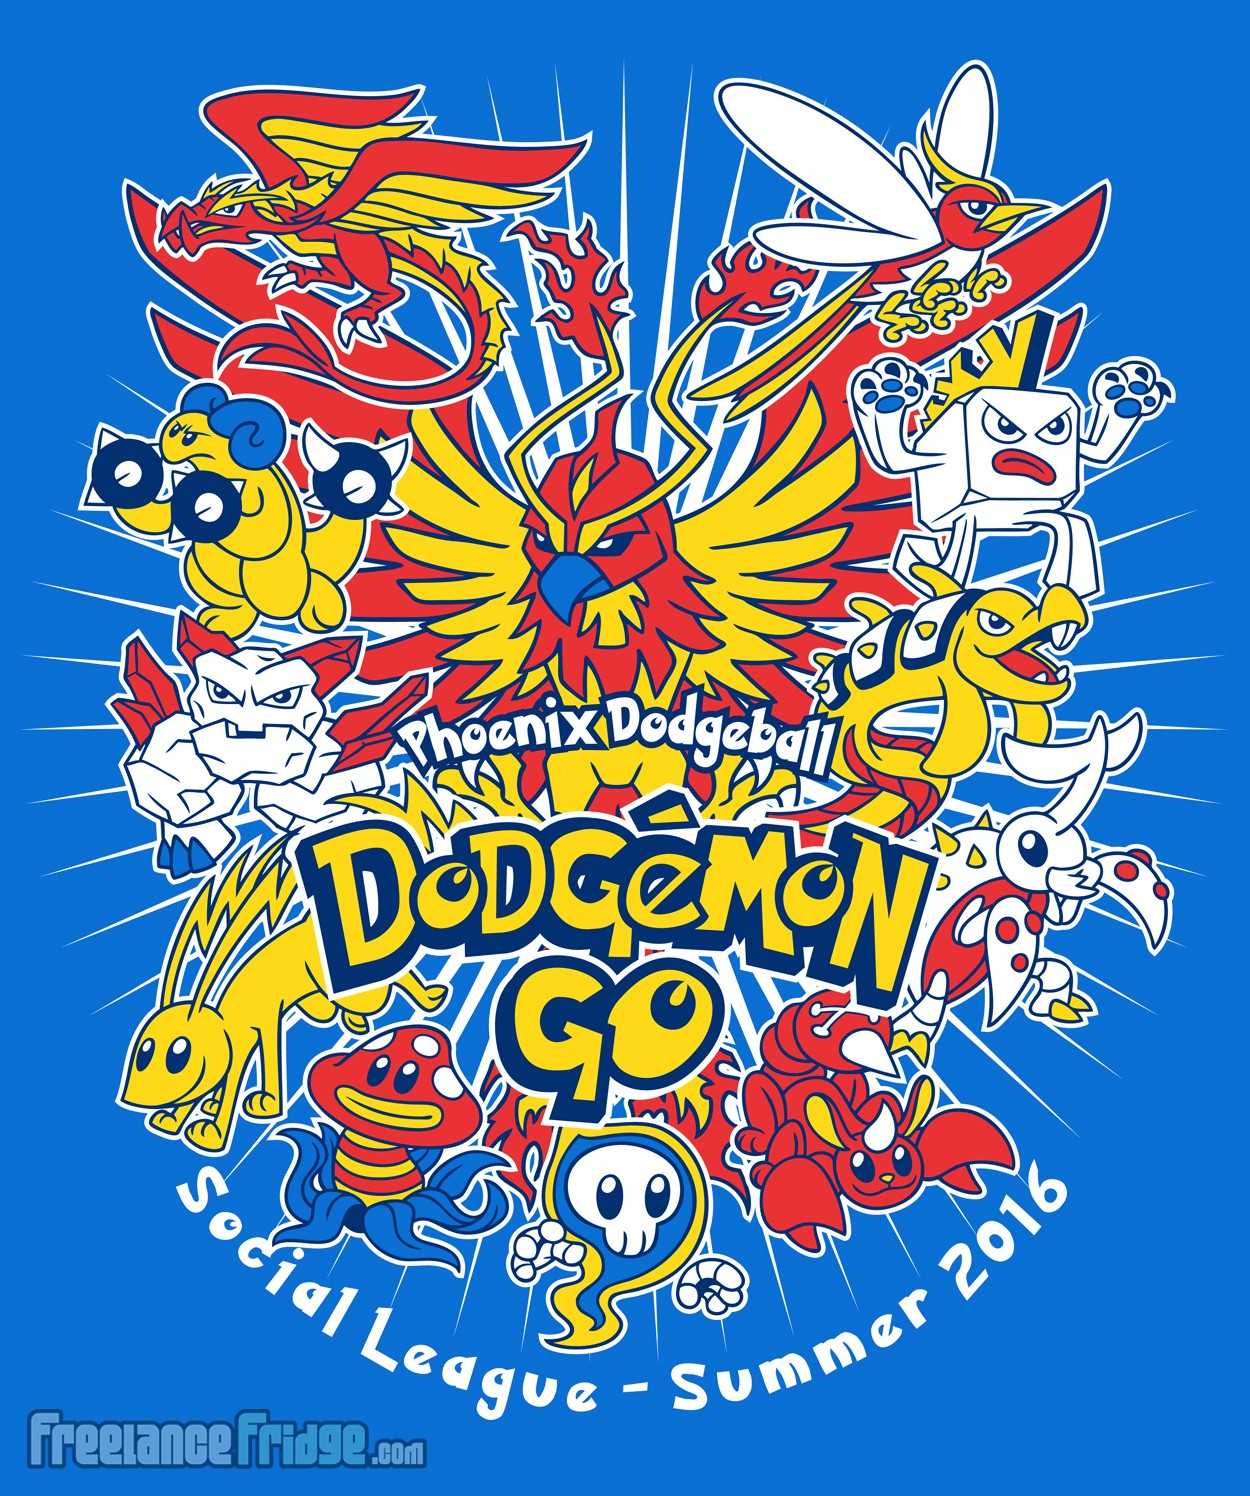 Pokemon Pokedodge characters T-shirt design for dodgeball league sports team